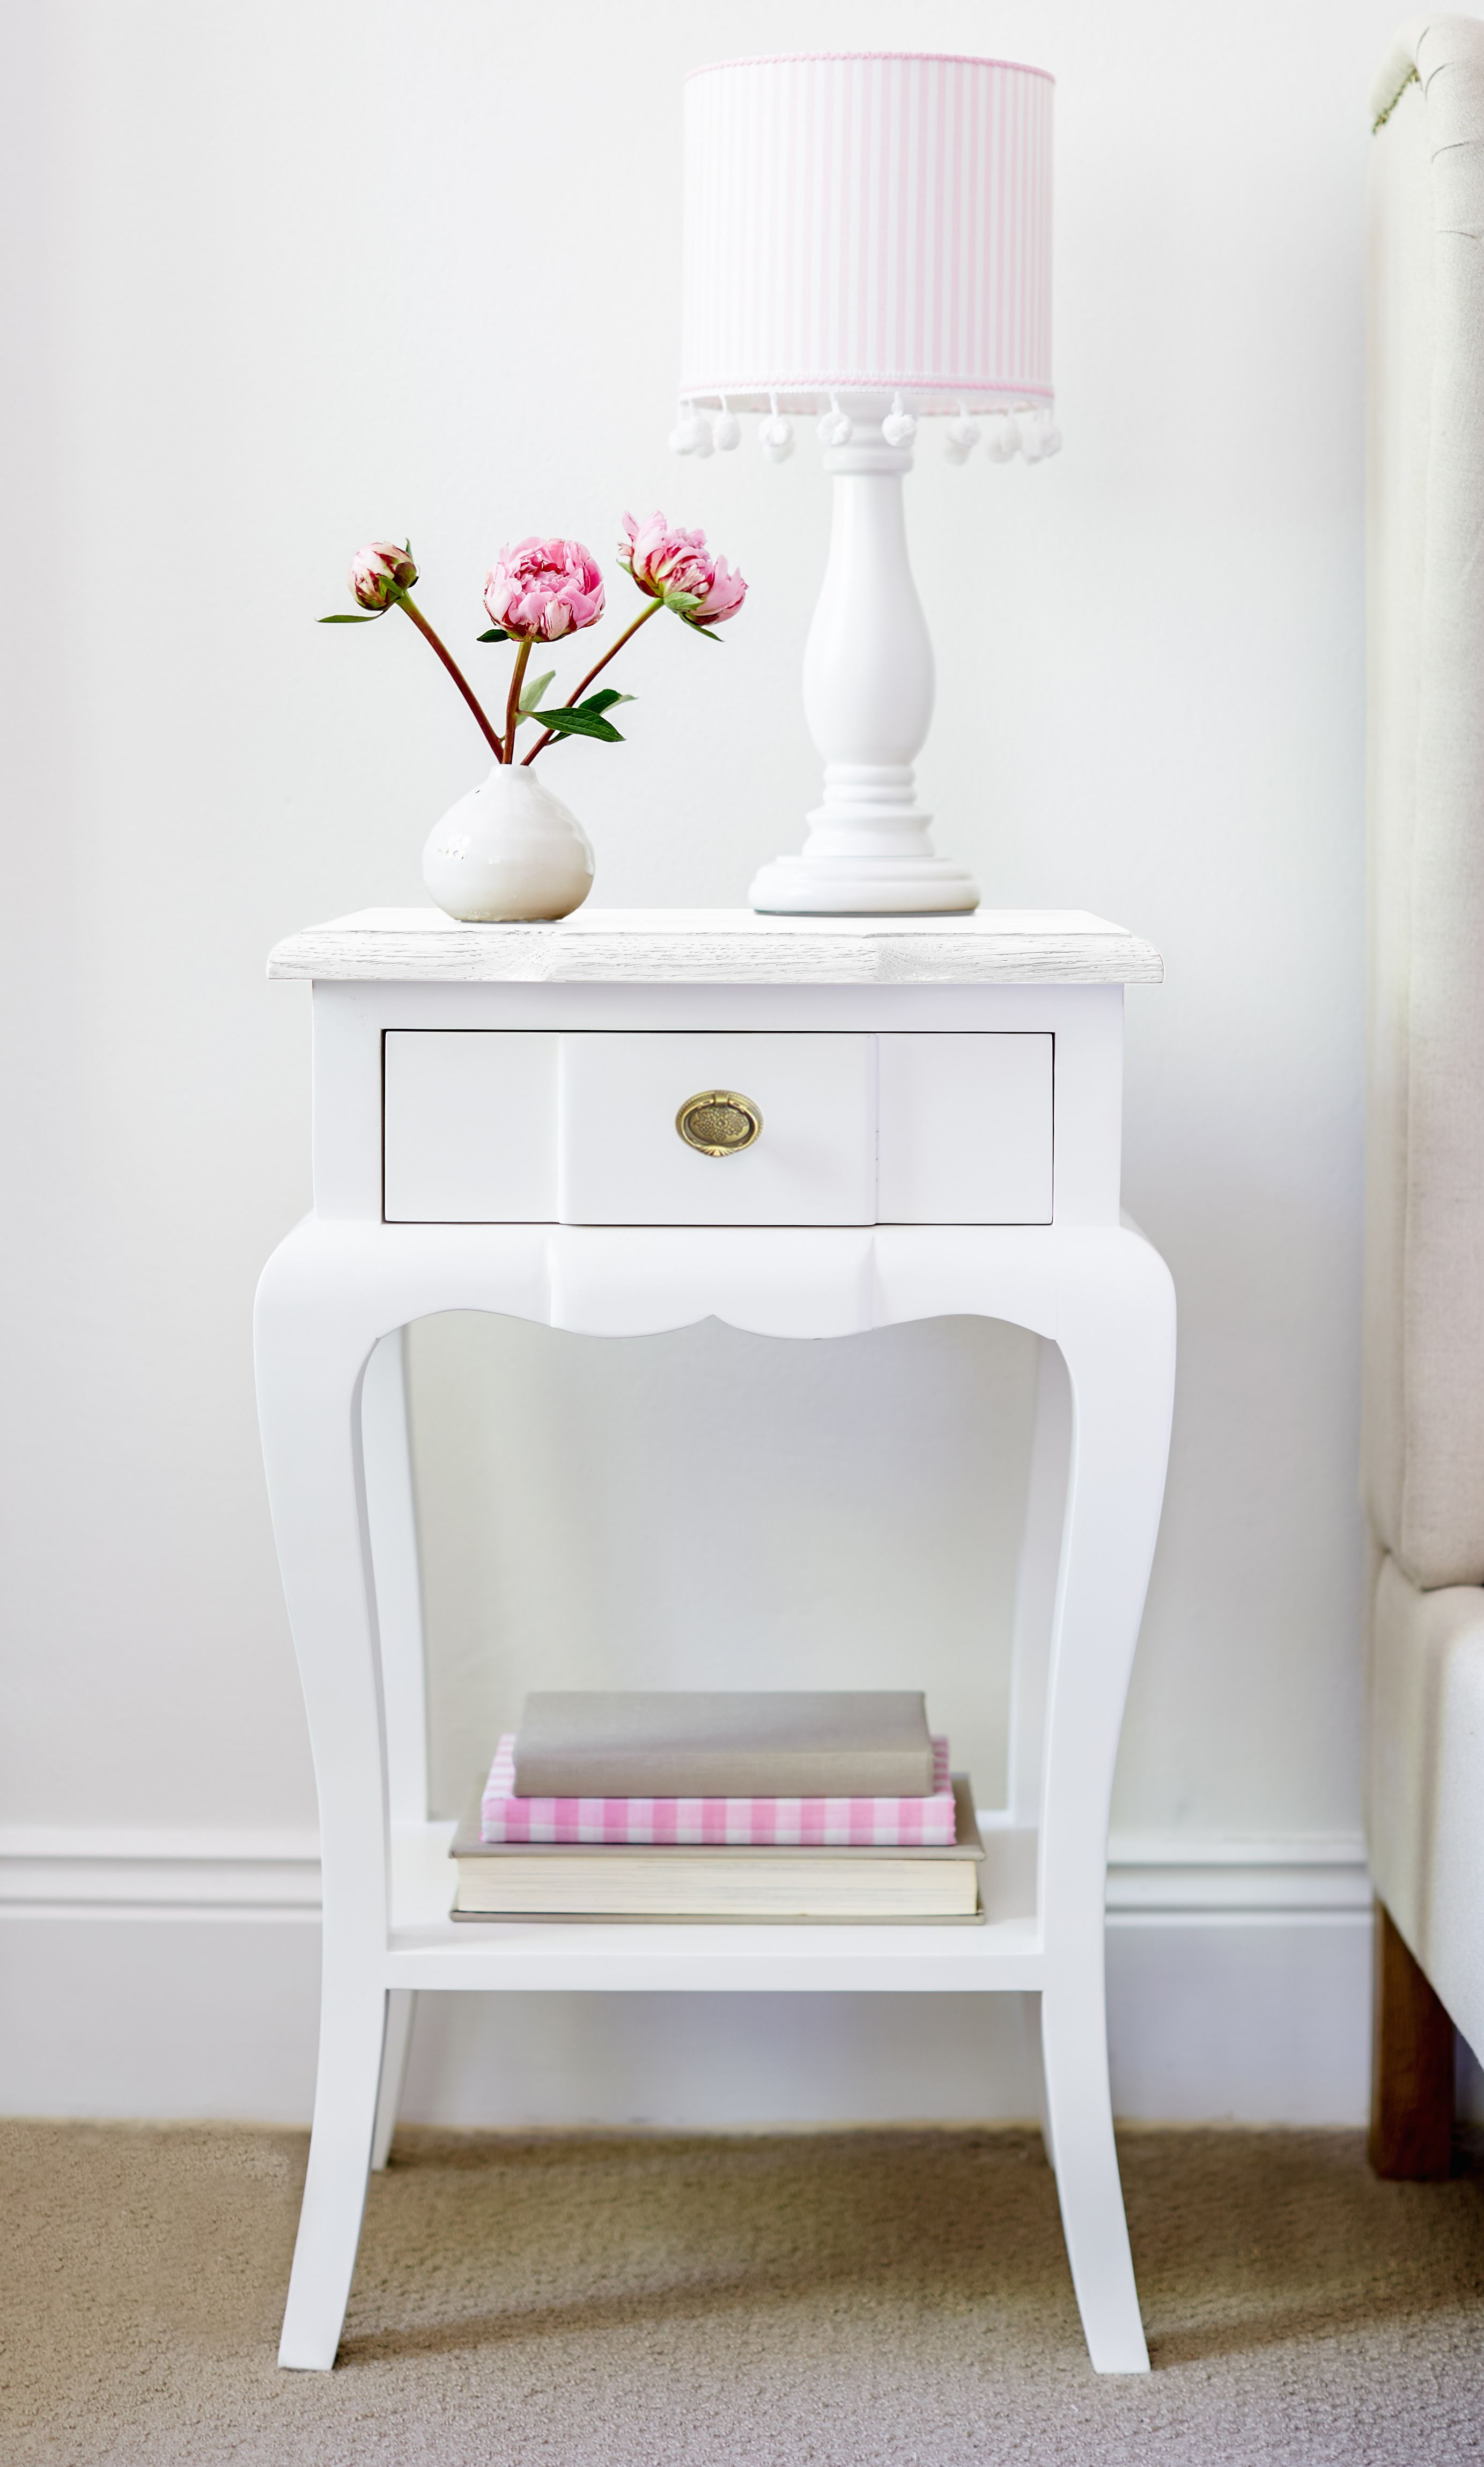 Bedside Table Small French Style from www